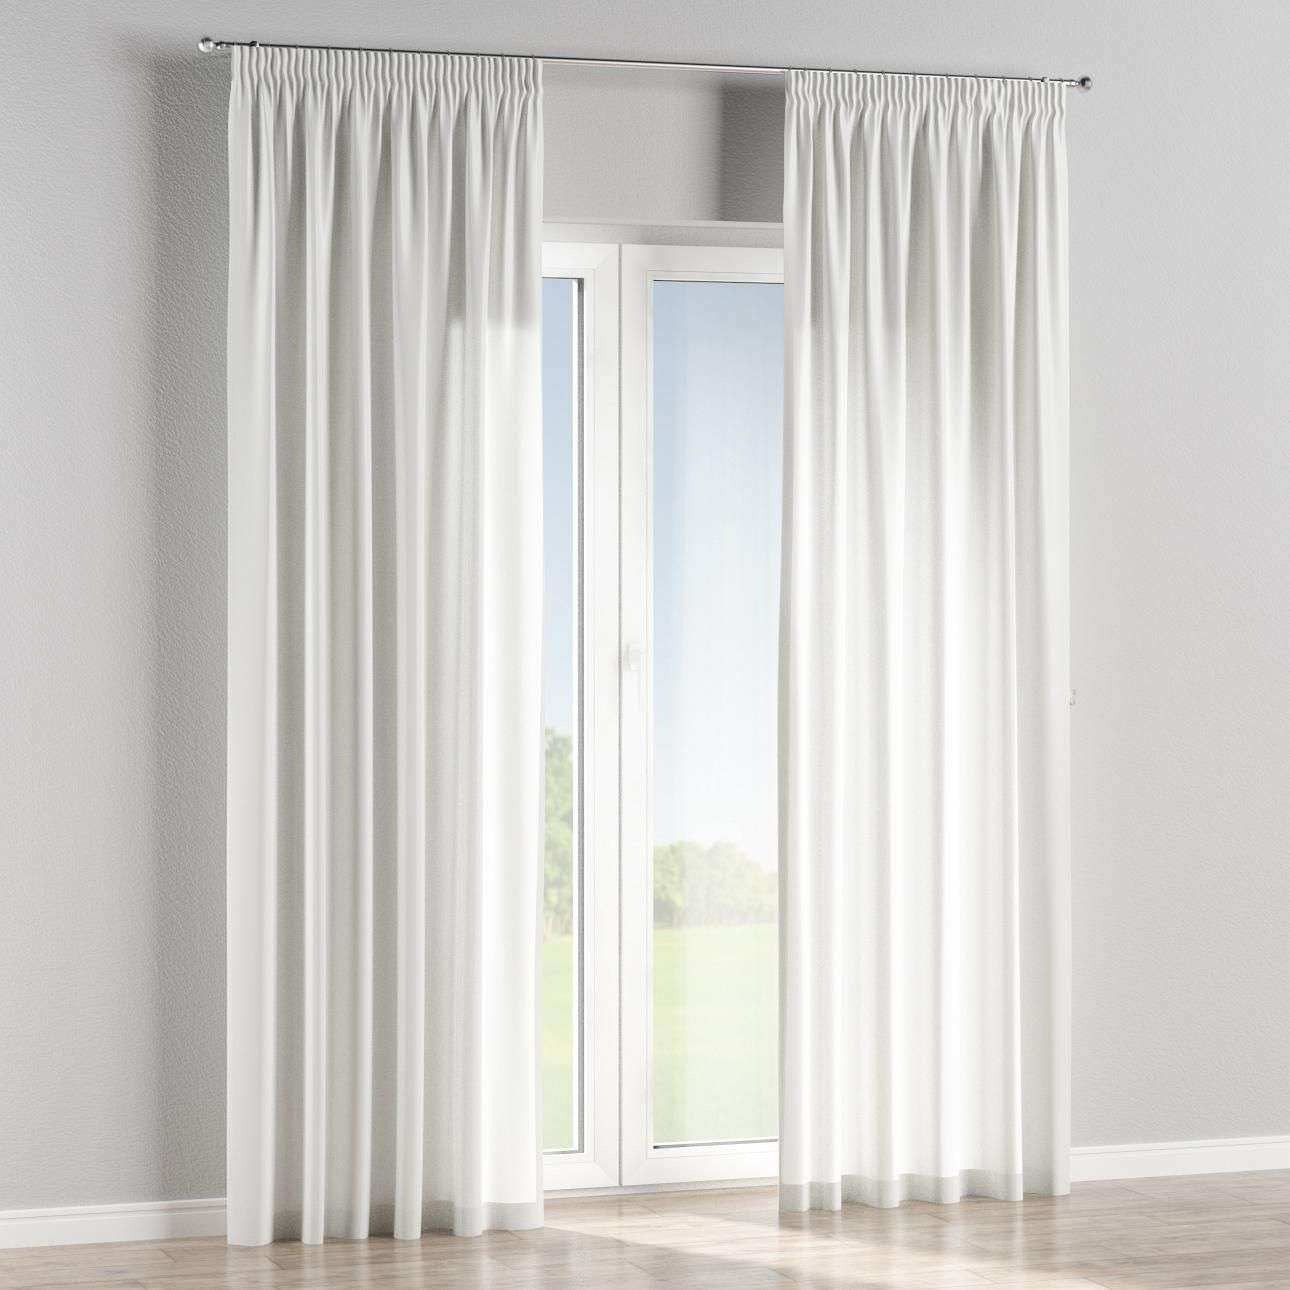 Pencil pleat curtains in collection Milano, fabric: 150-31